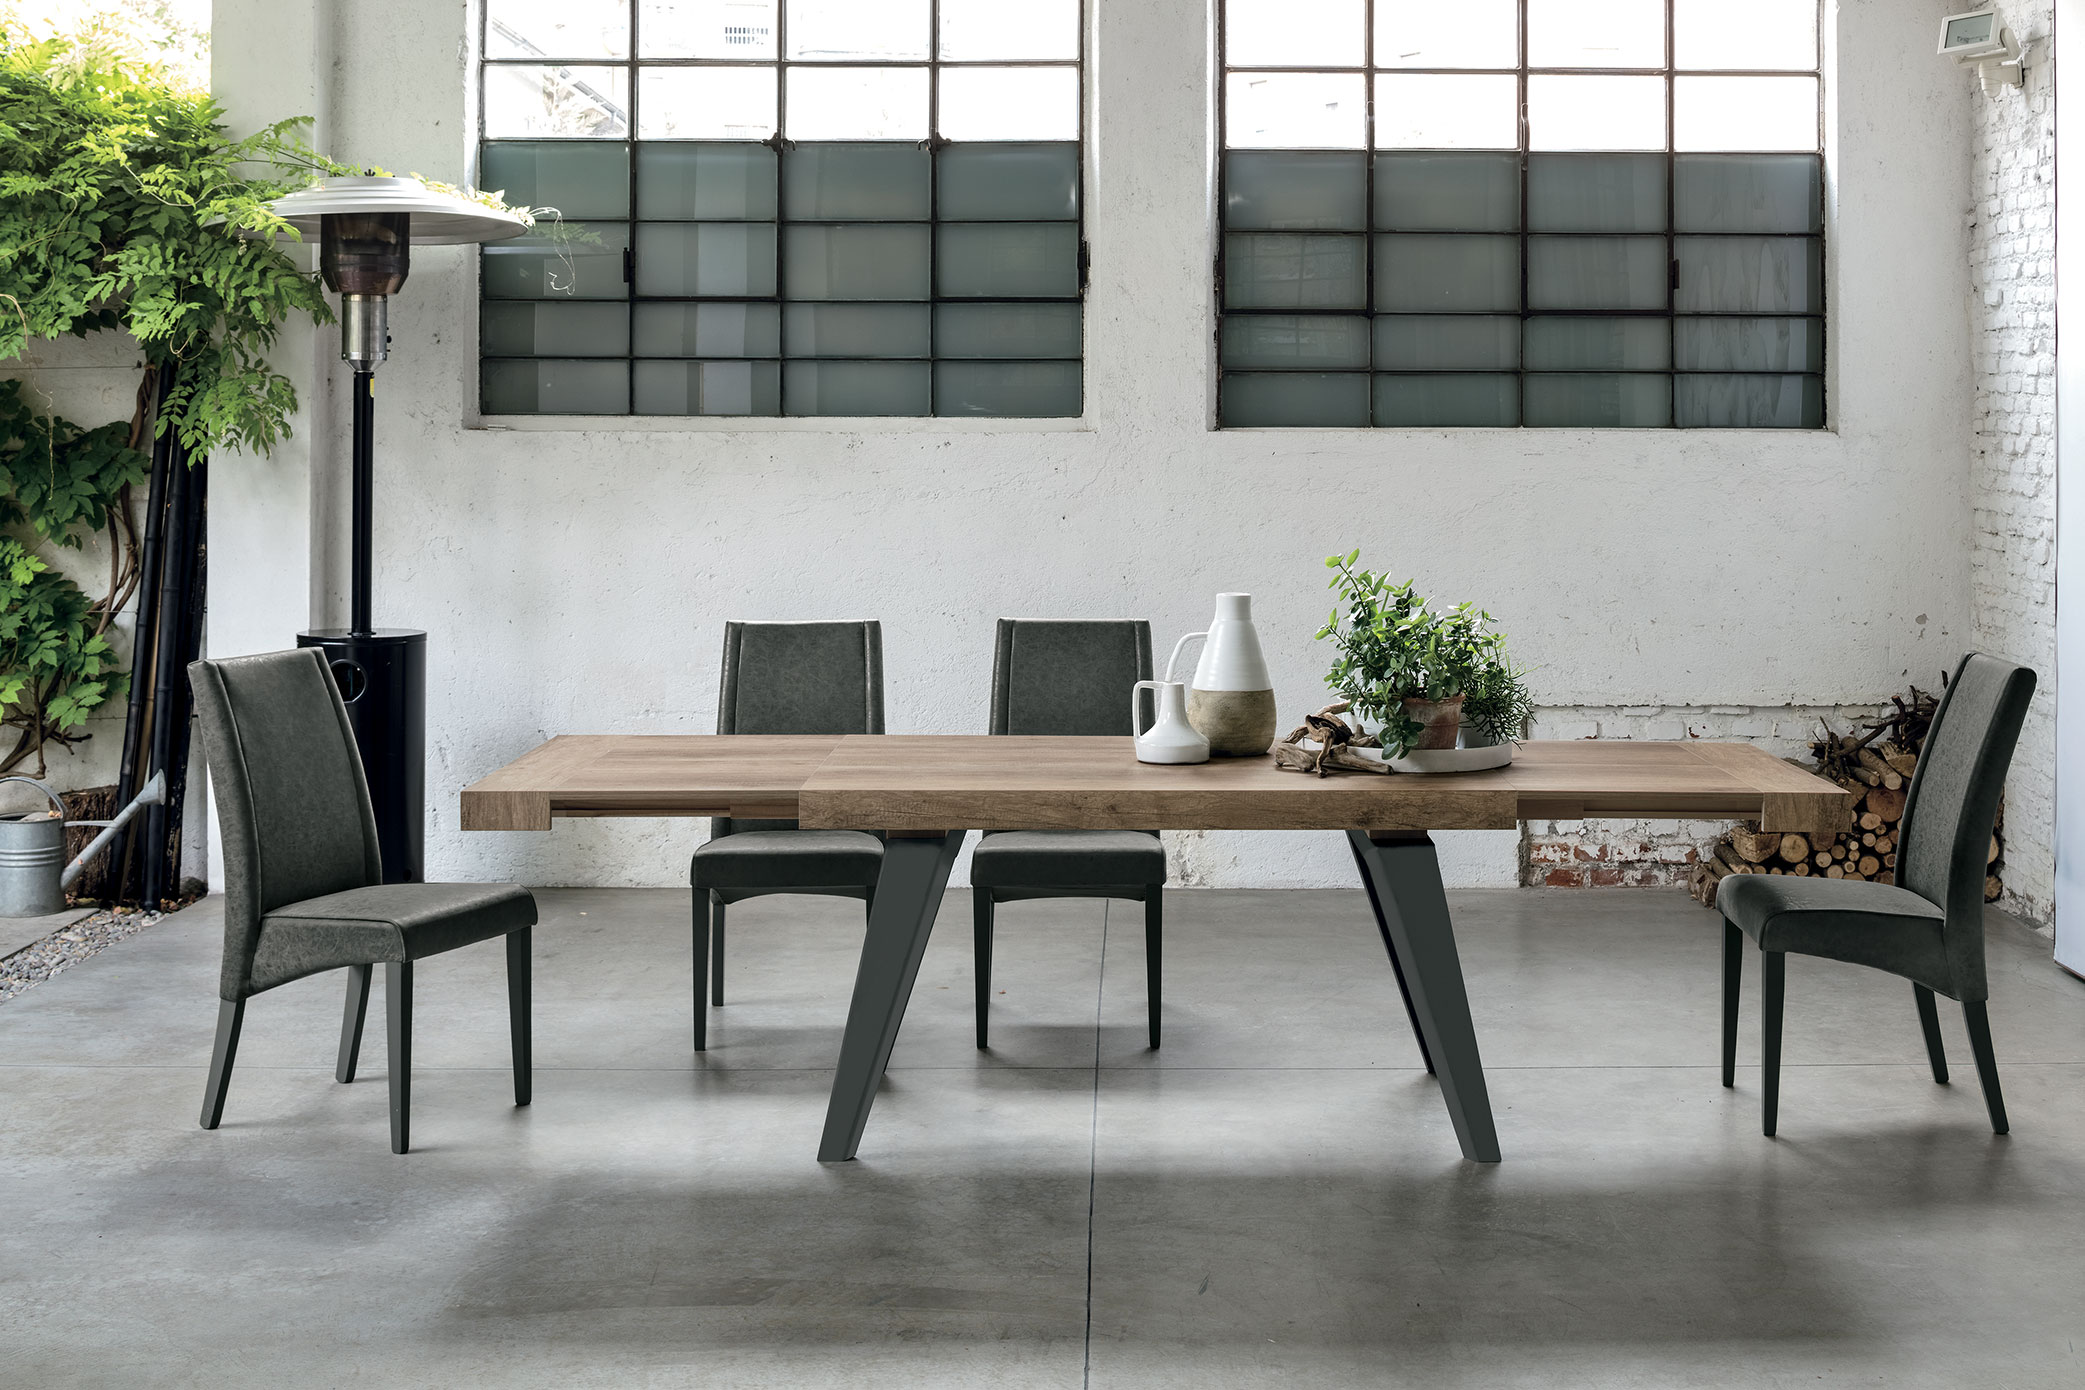 SCIROCCO Table • Target Point